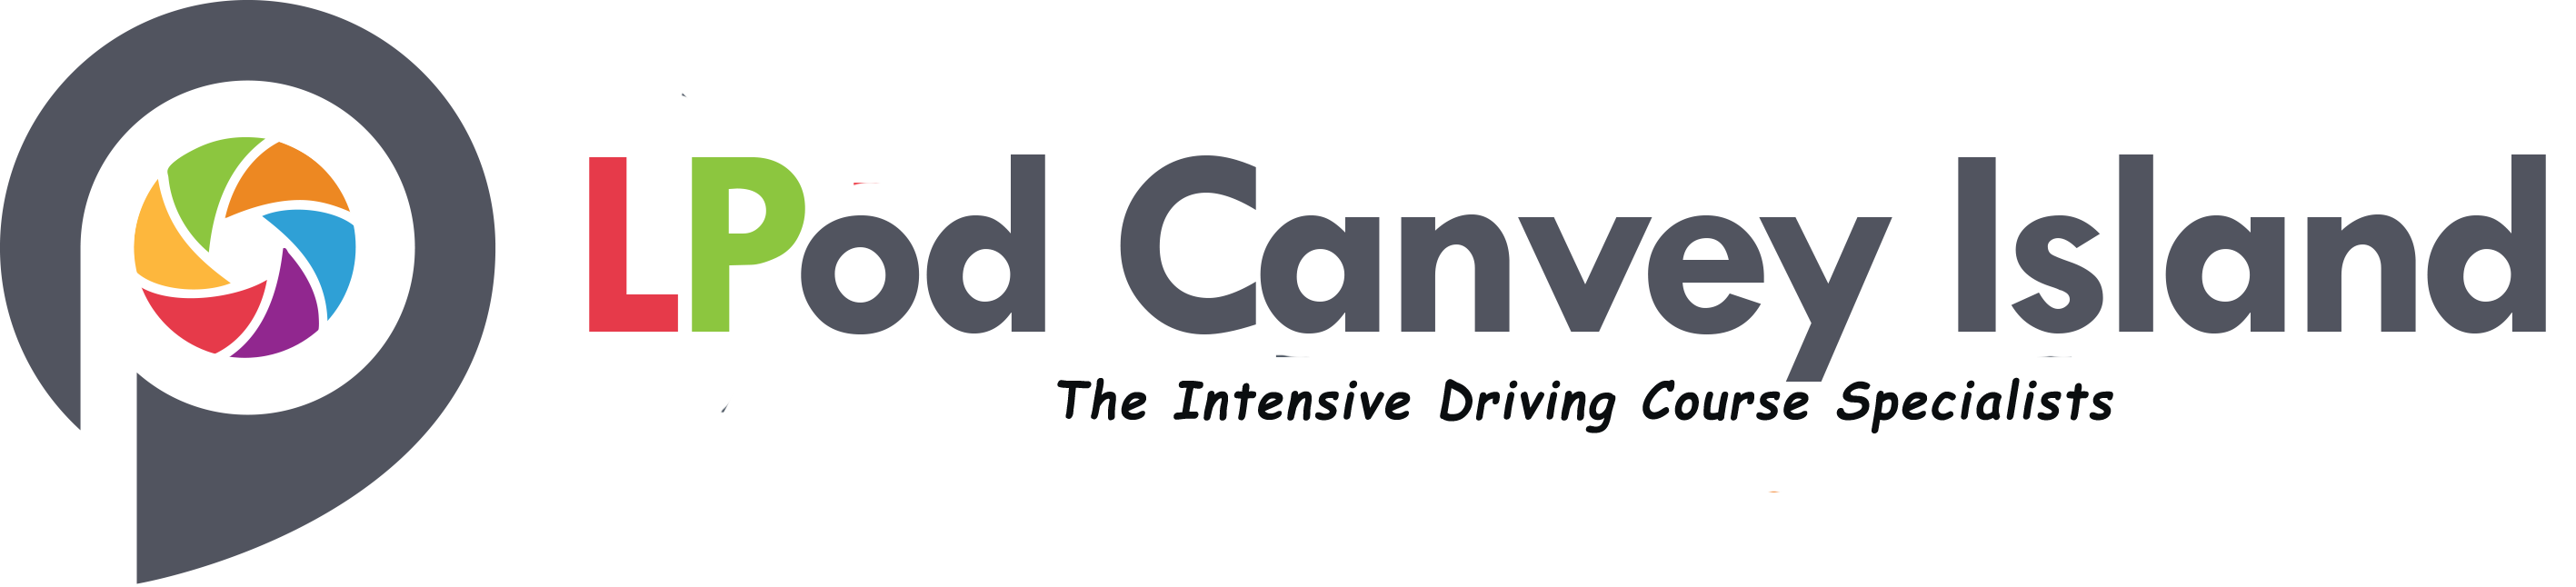 intensive driving courses canvey island, fast pass driving courses canvey island, one week driving courses canvey island